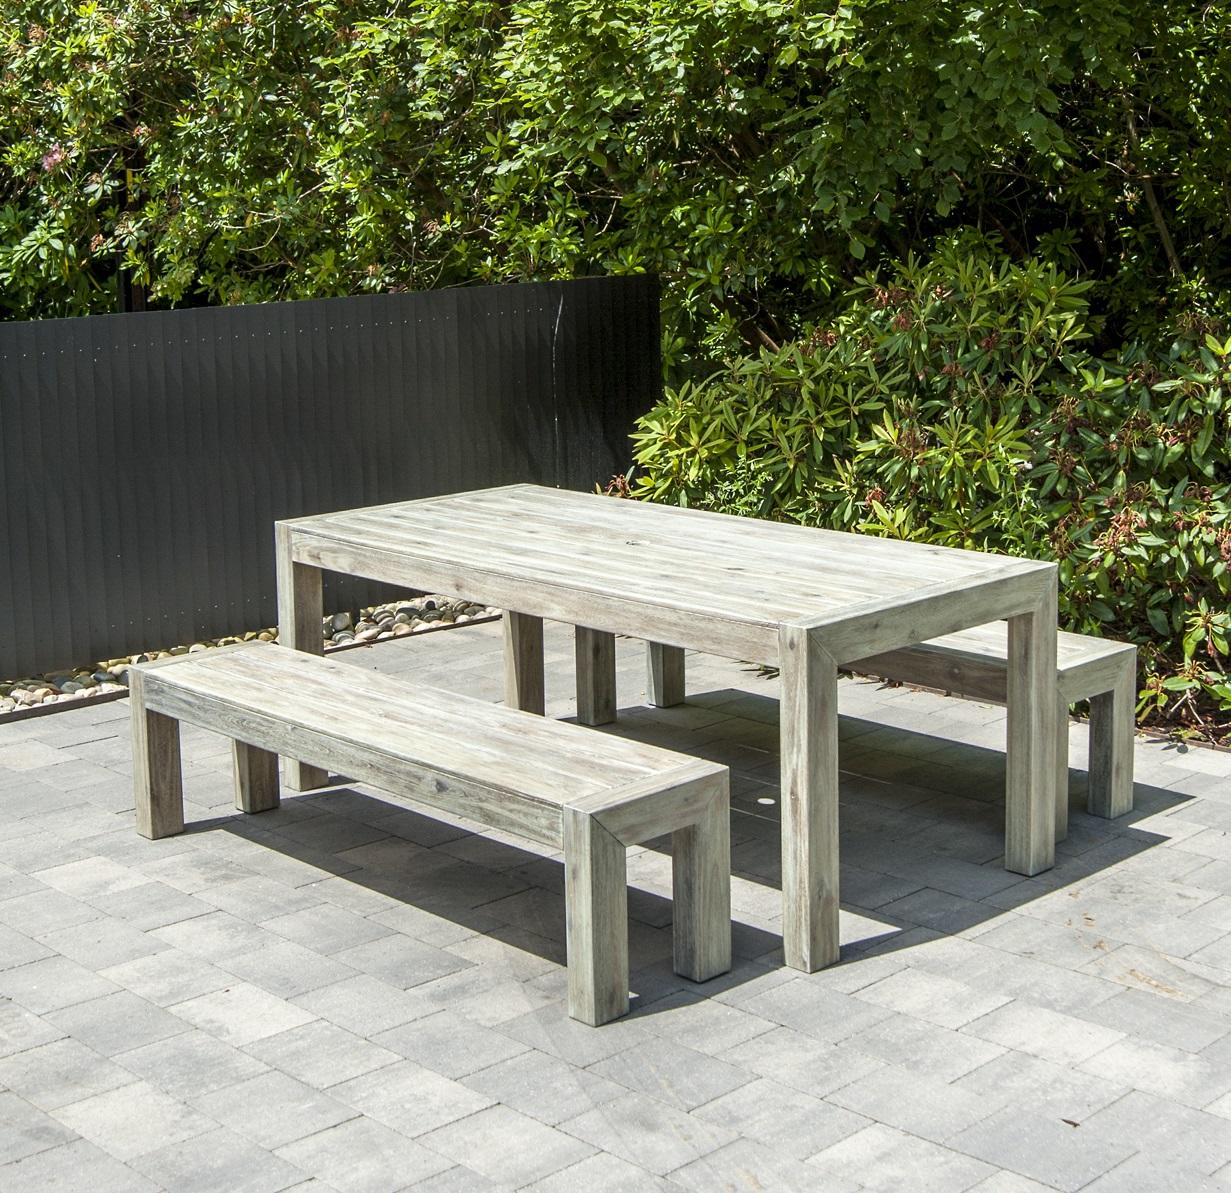 Modern wooden garden dining picnic table and benches in grey hardwood